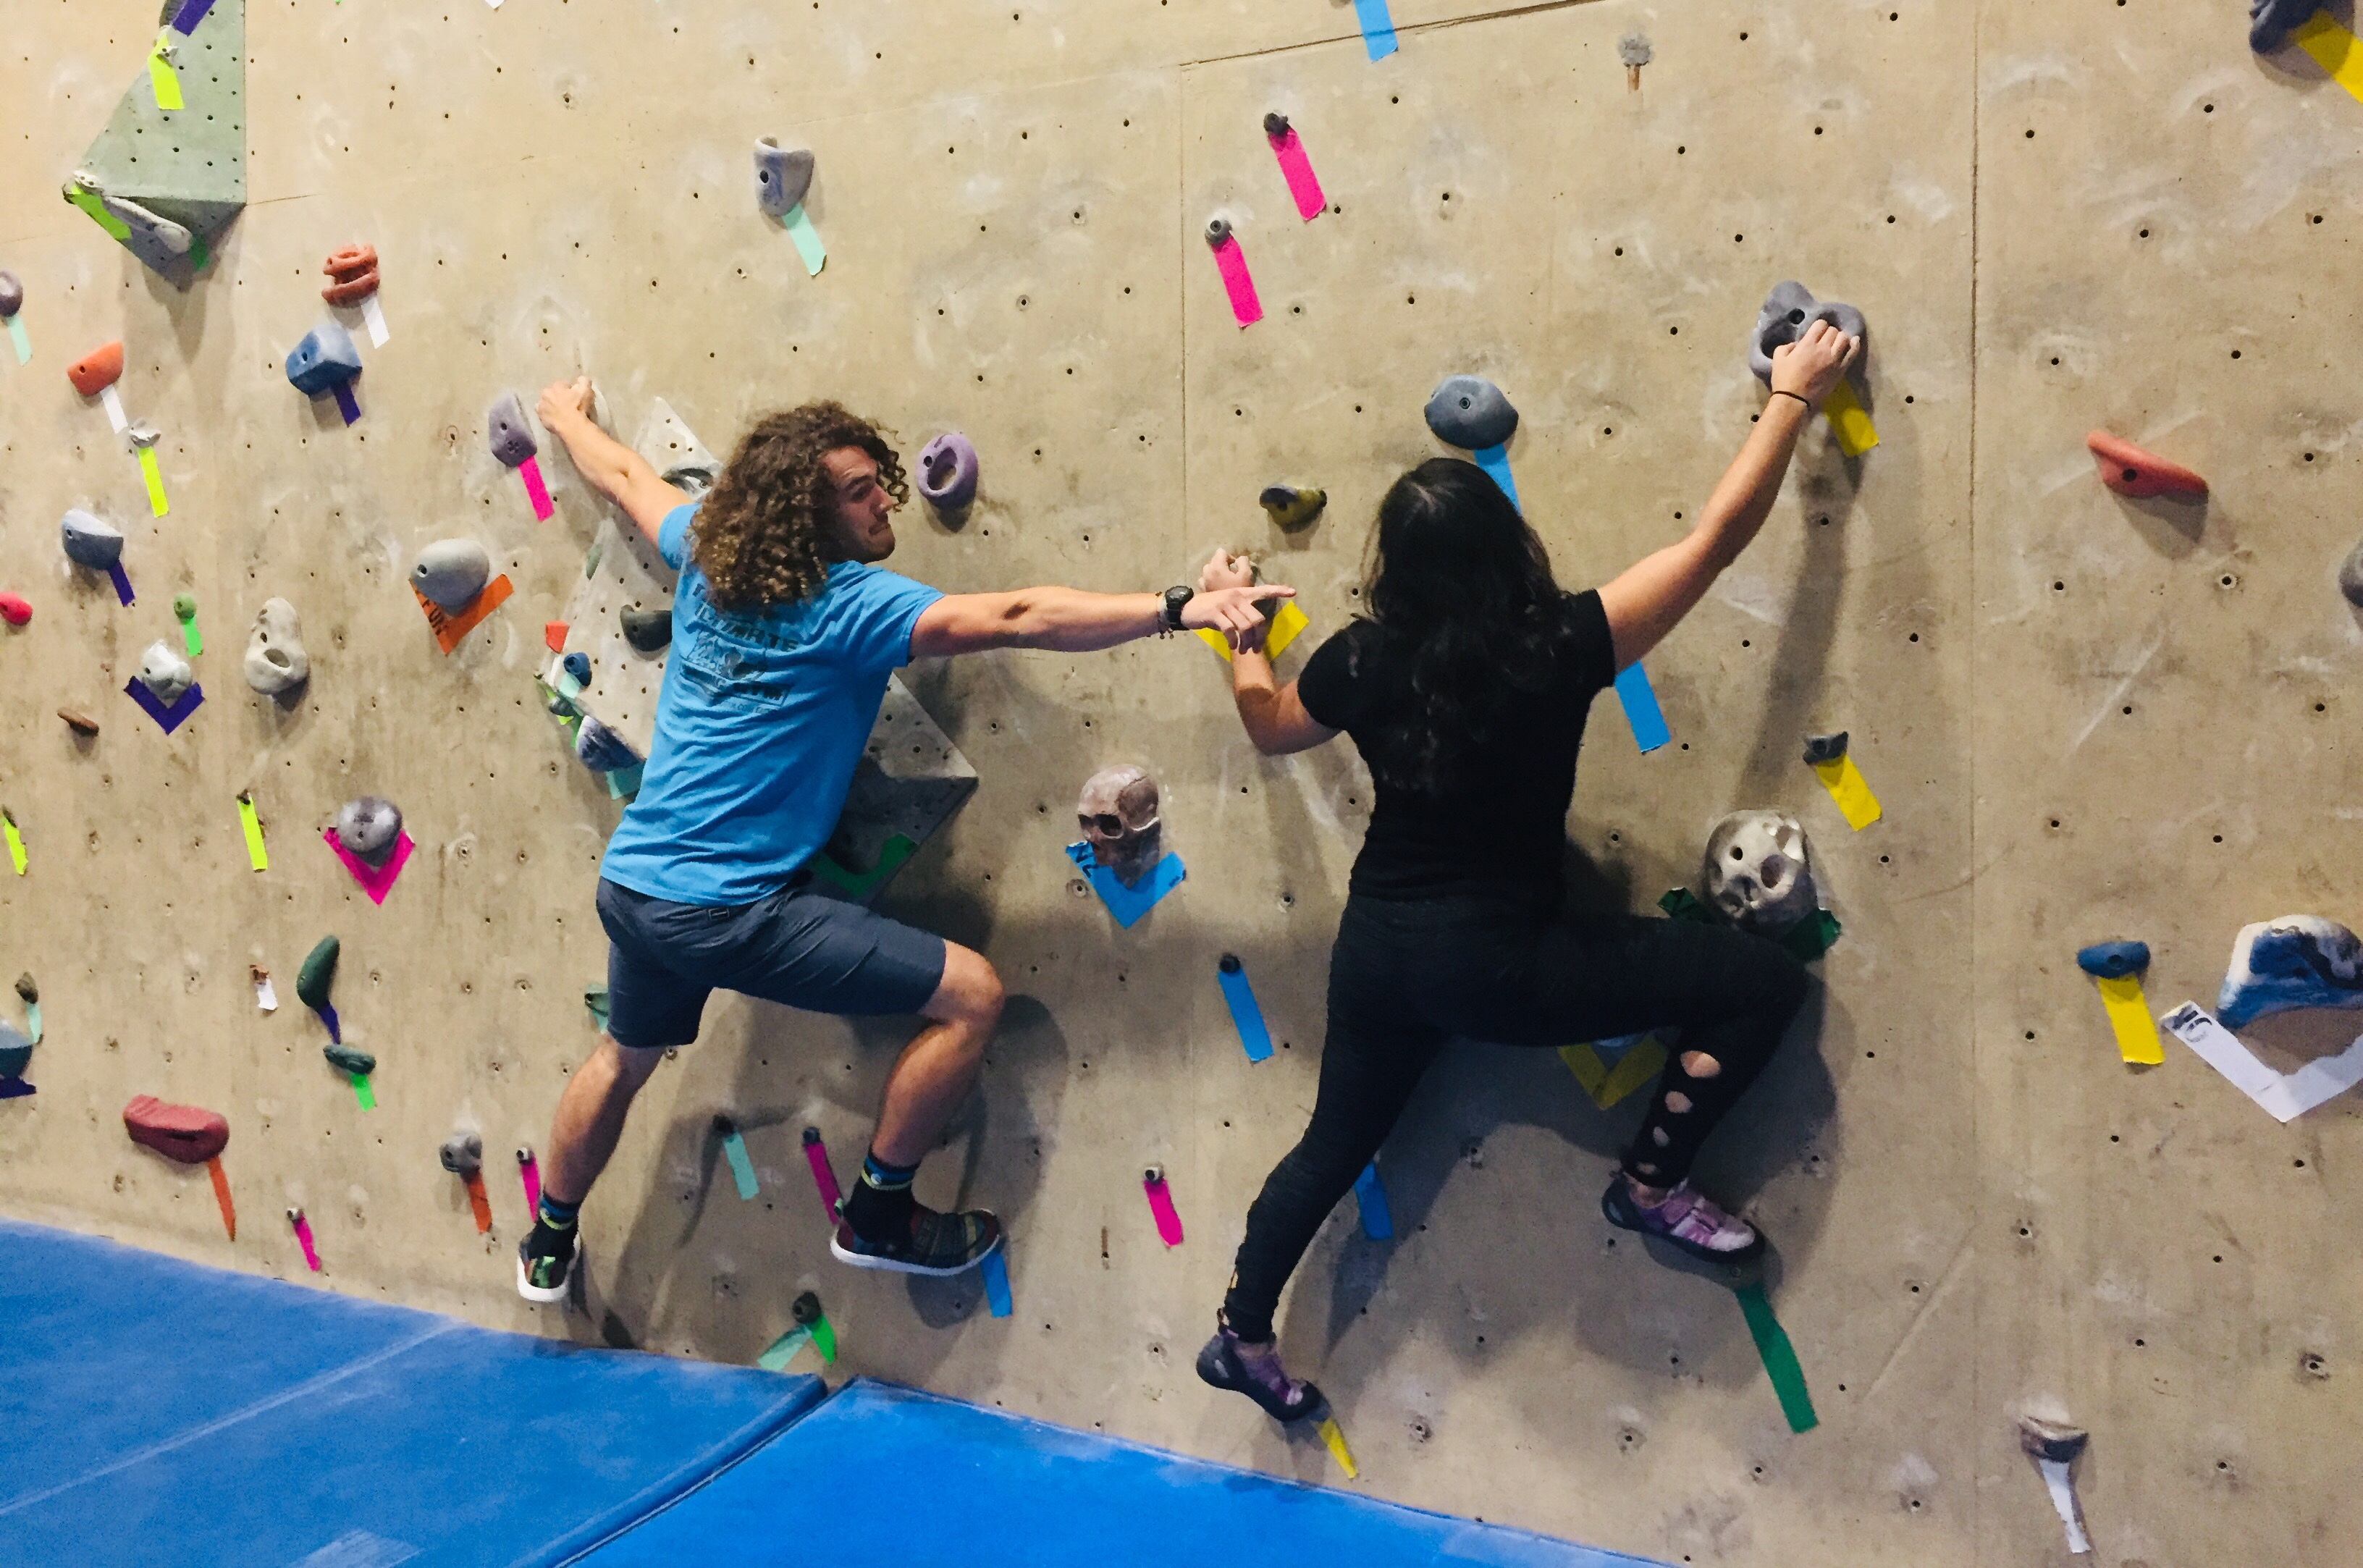 Two Climbers Playing Bouldering Tag